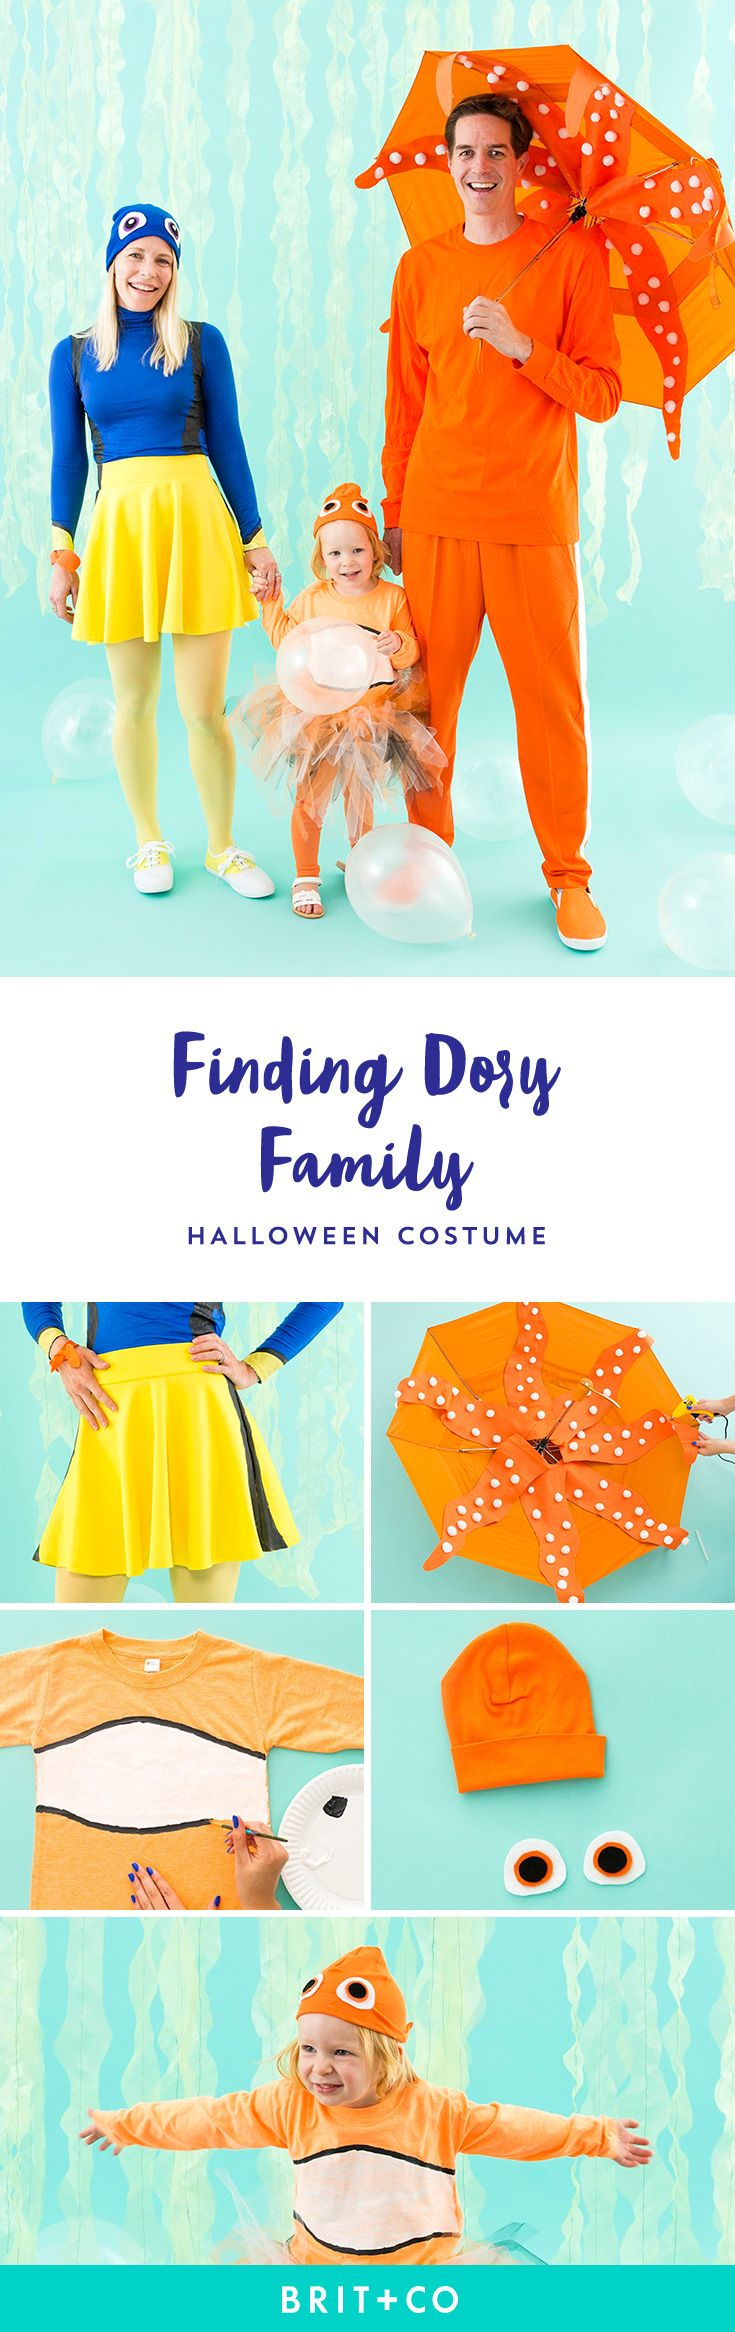 Save this Finding Dory family costume to learn how to dress up as Dory, Hank + Nemo for Halloween.